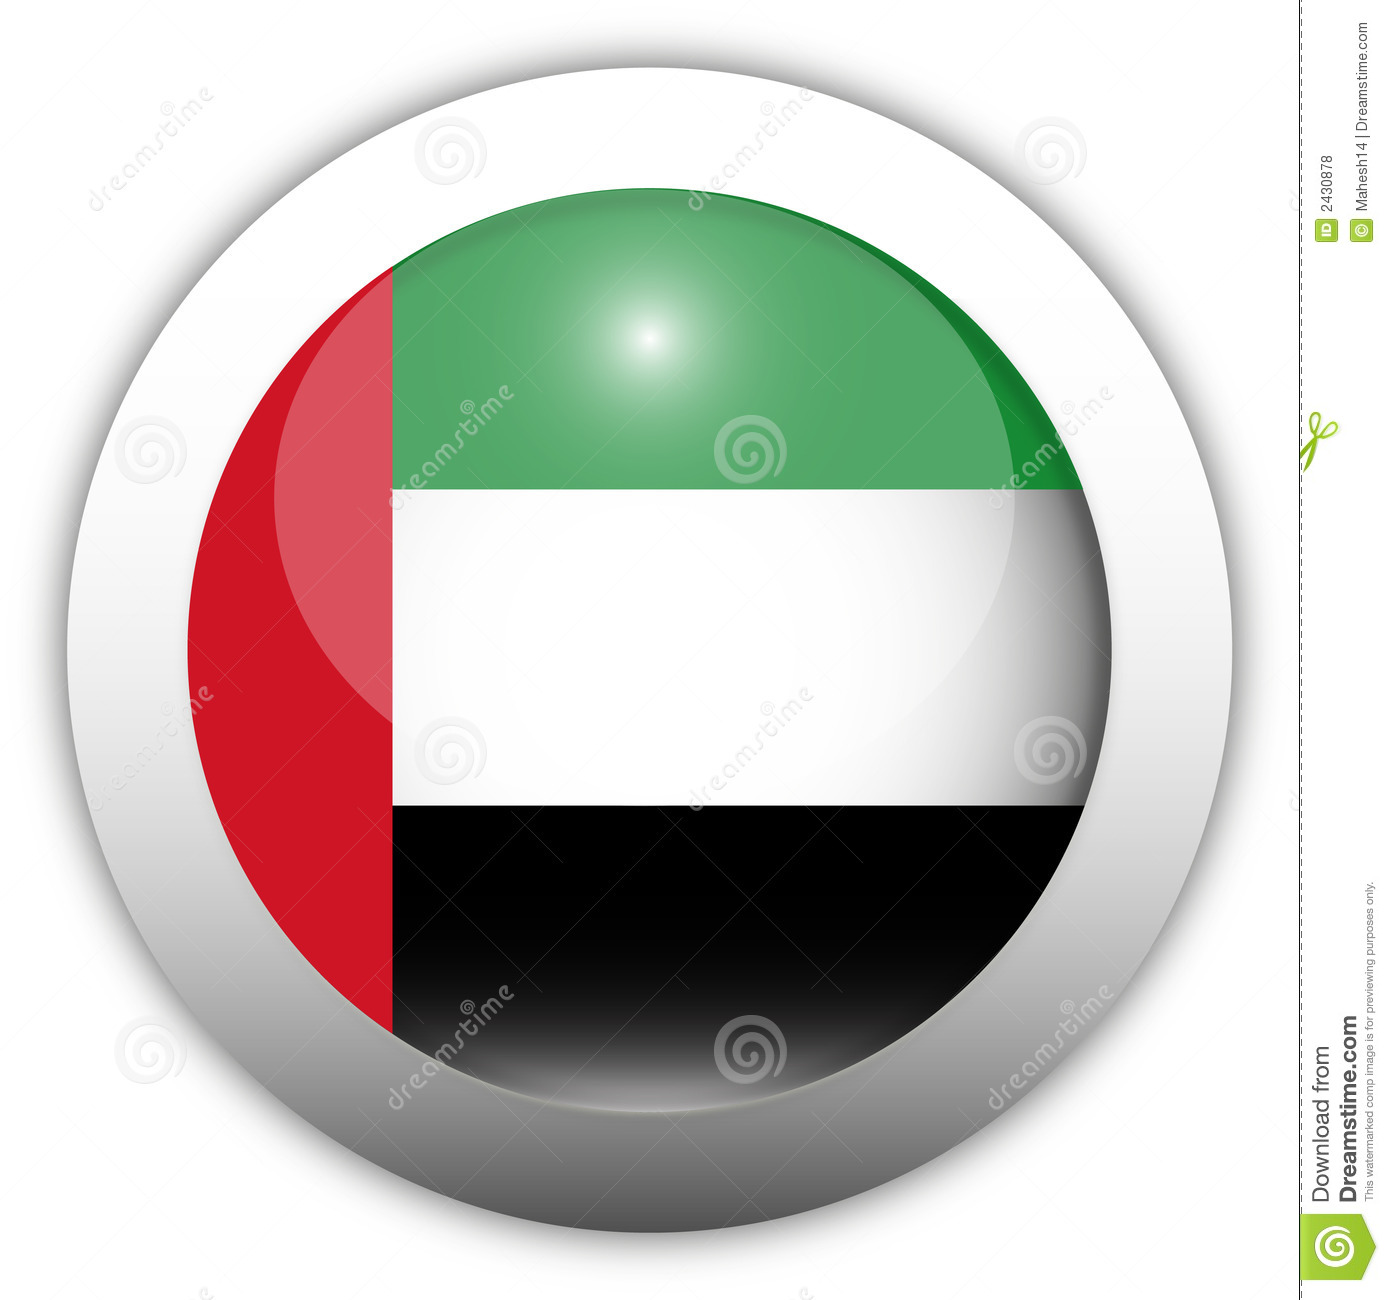 Uae Flag Aqua Button Royalty Free Stock Photos Image